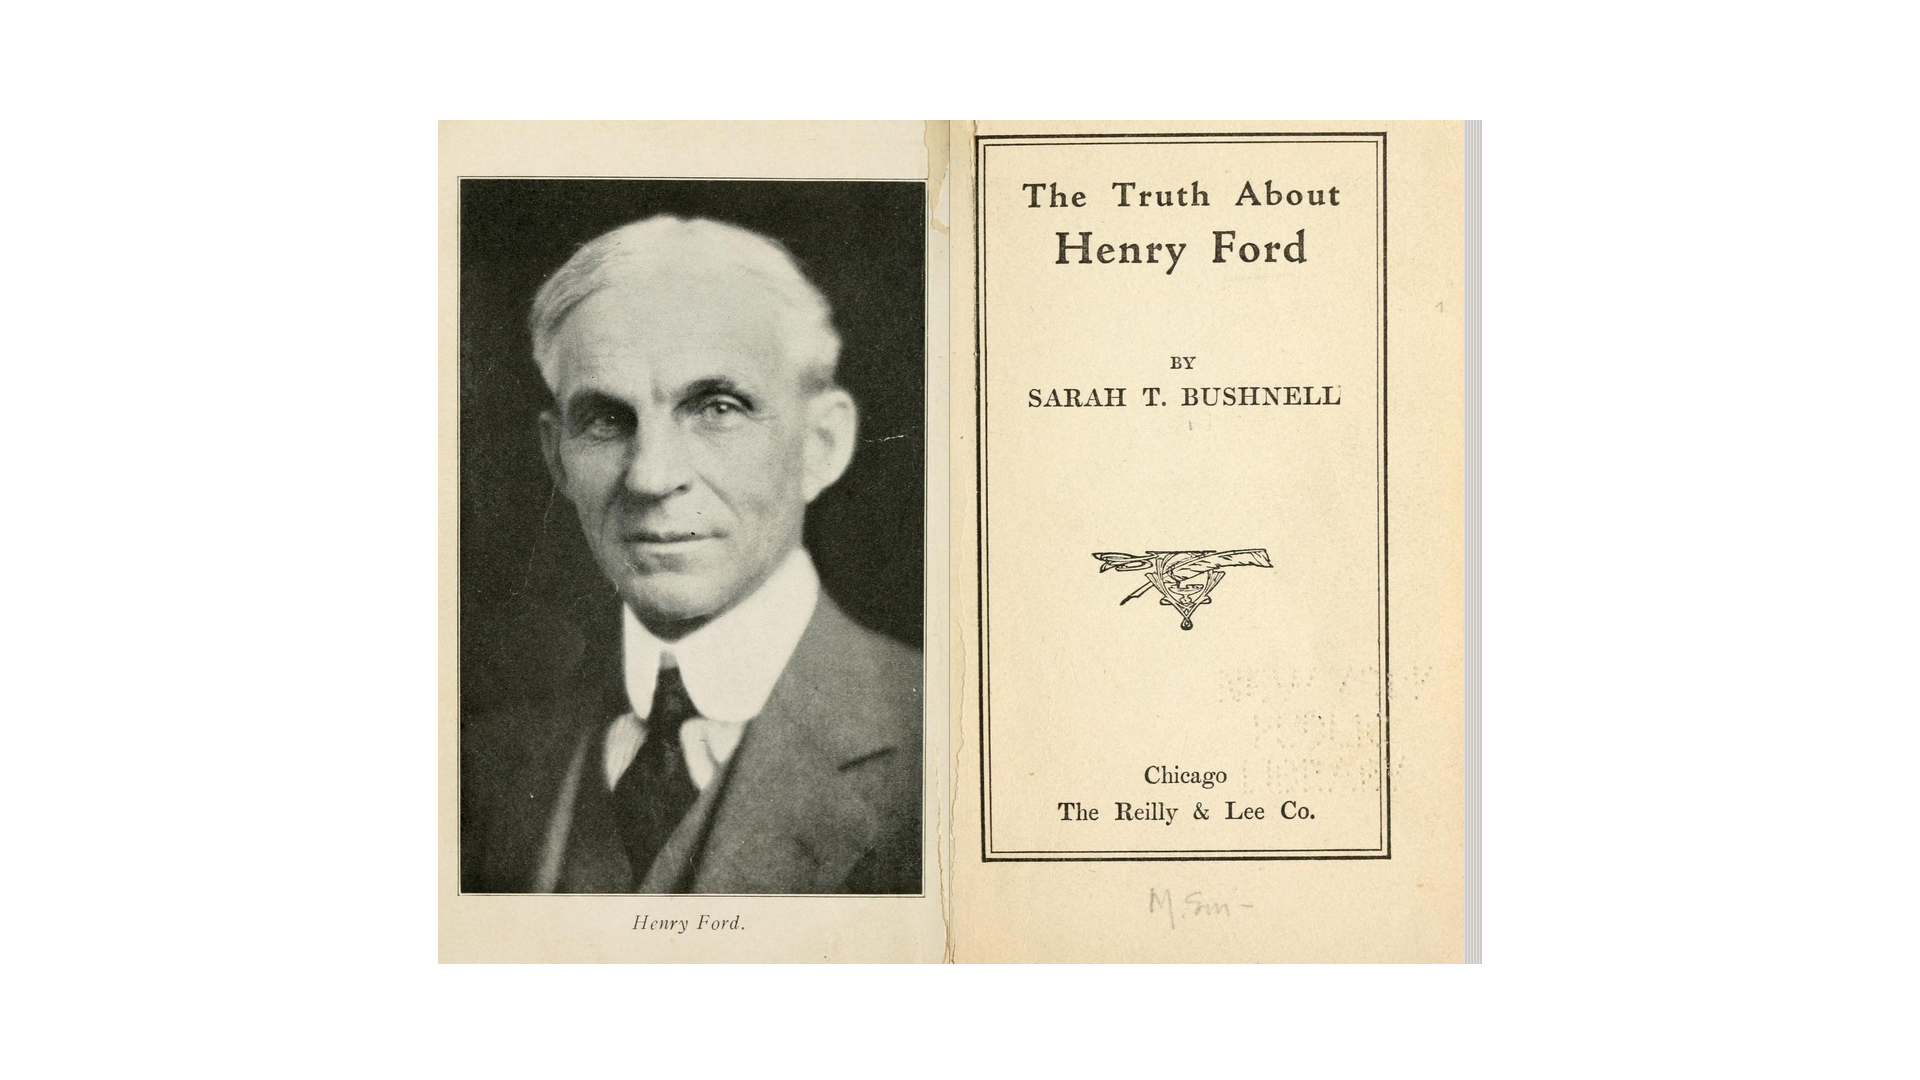 The truth about Henry Ford - by Bushnell, Sarah T - 1922 - New York Public Library